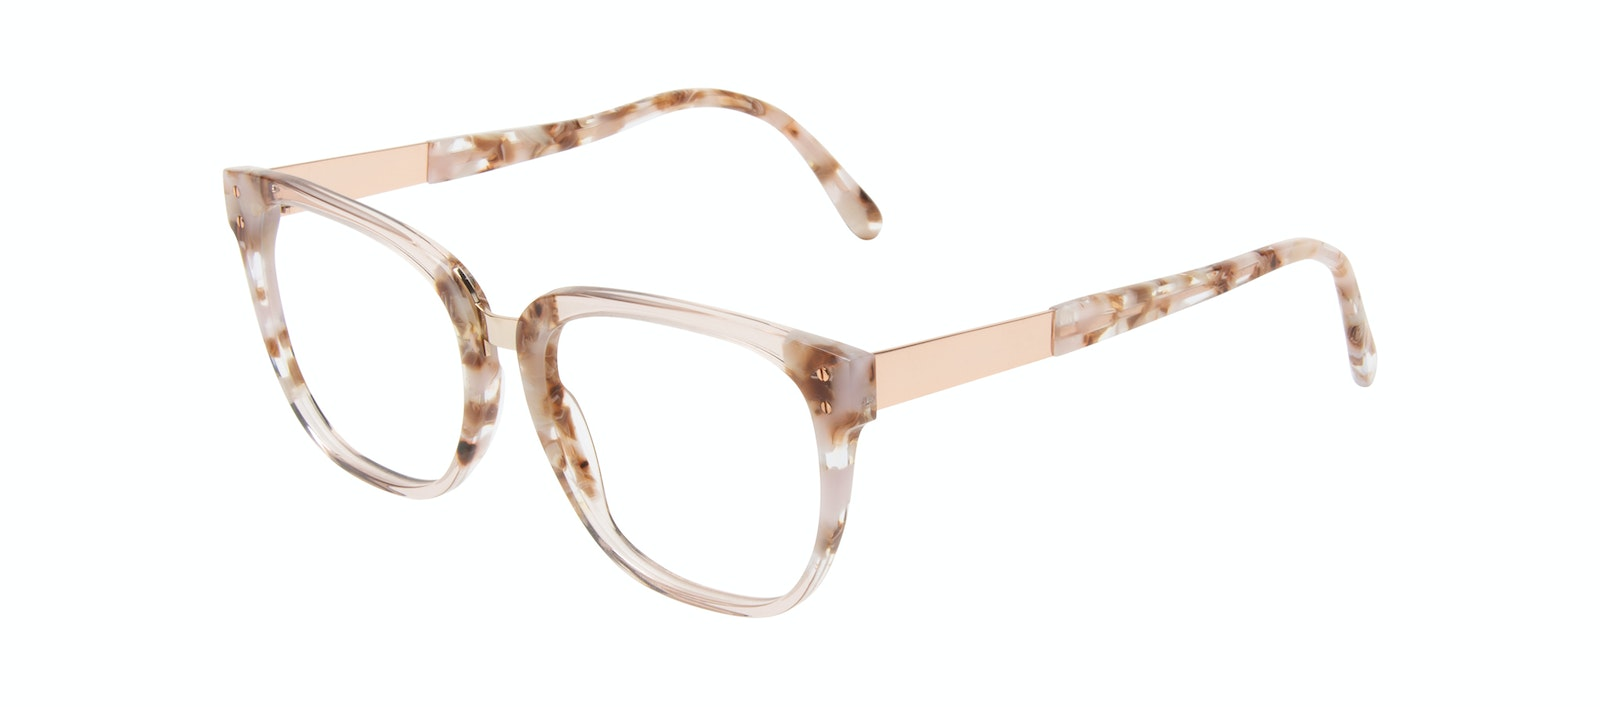 Affordable Fashion Glasses Square Eyeglasses Women James Dusty Rose Tilt